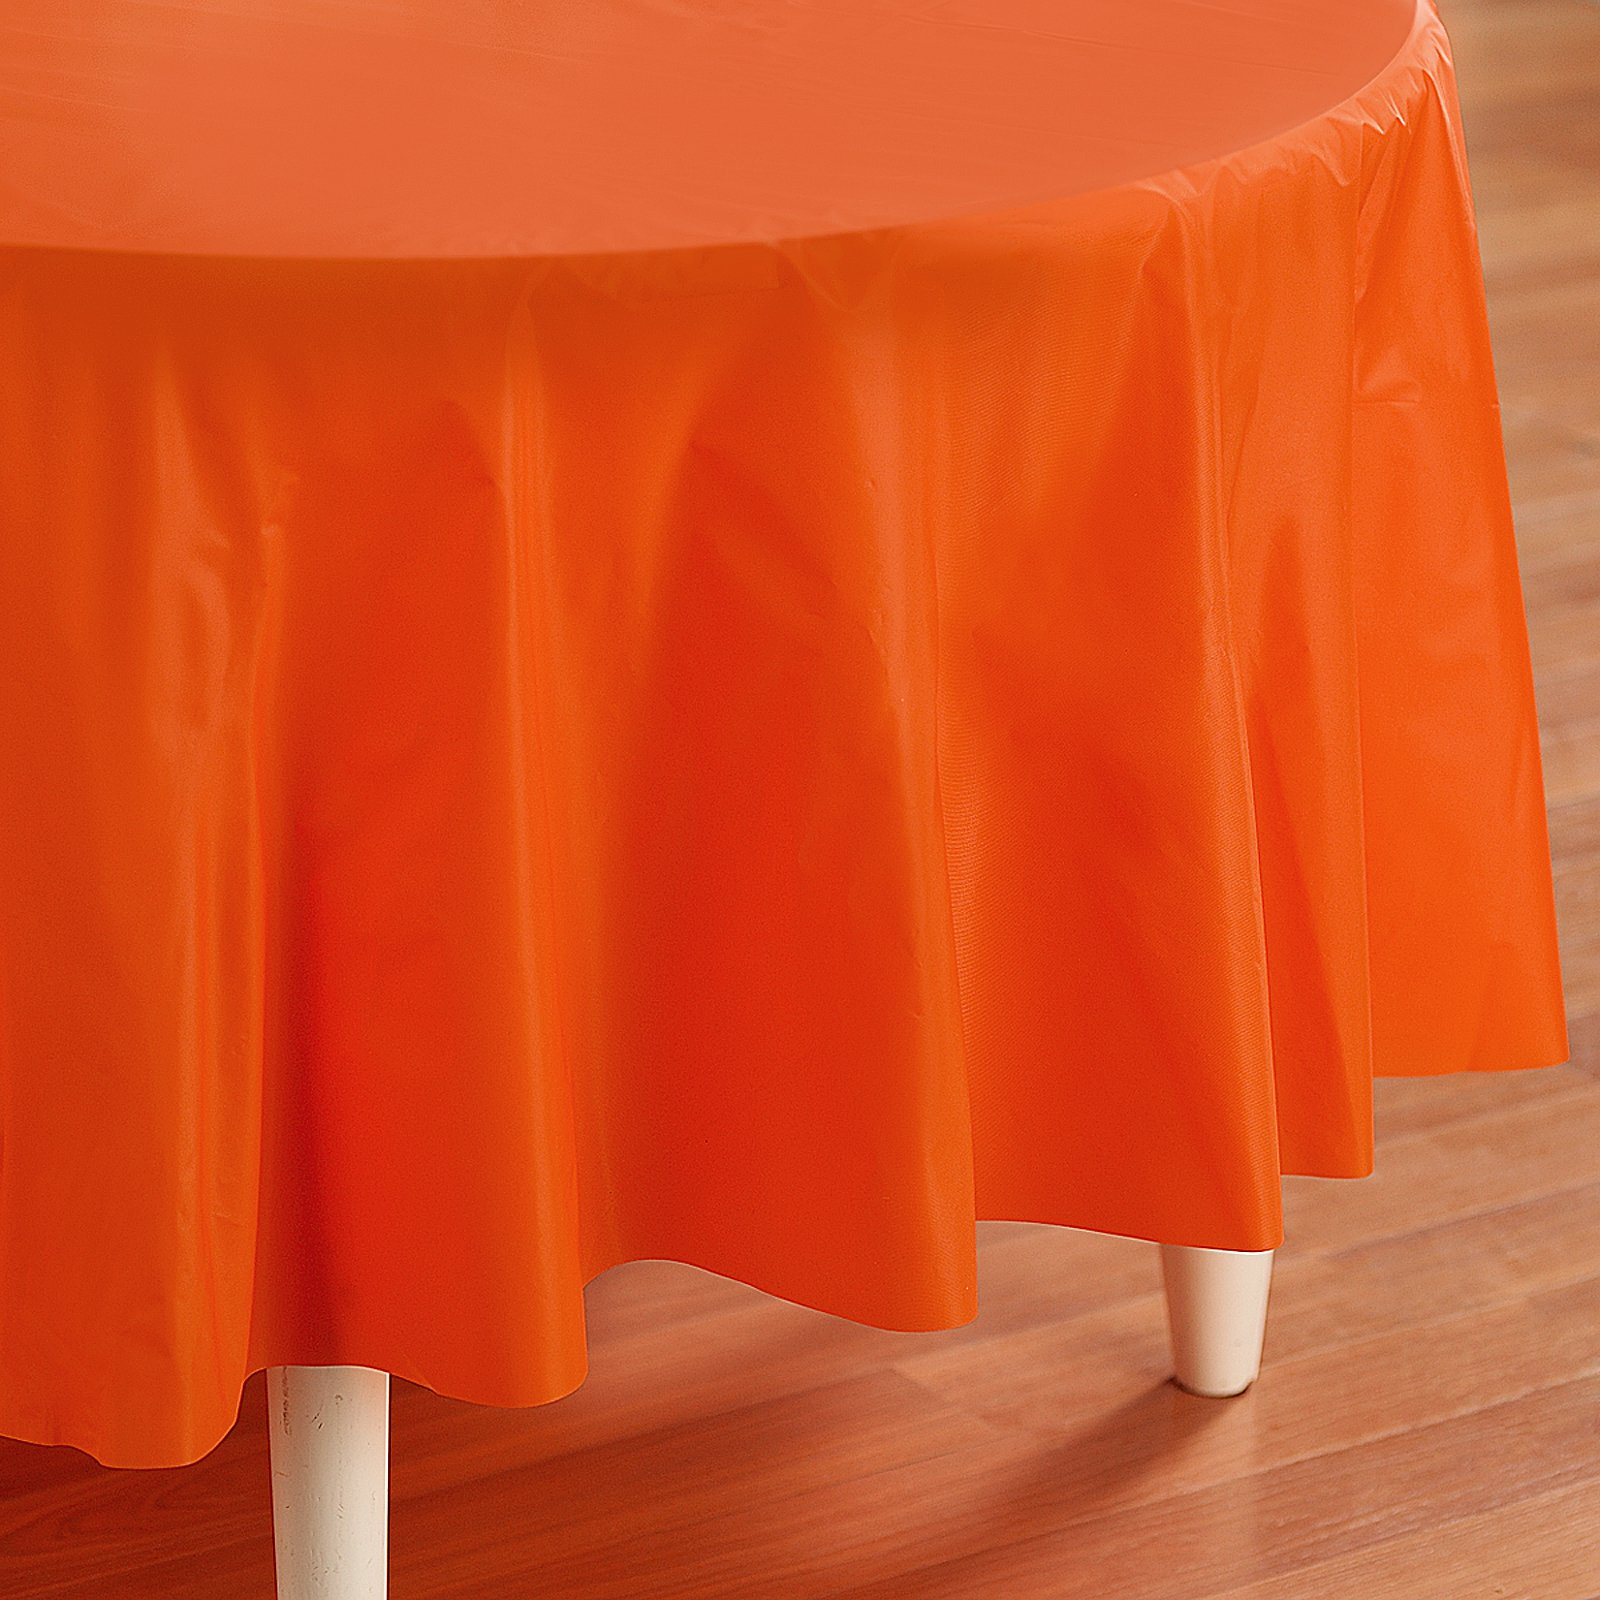 Sunkissed Orange (Orange) Round Tablecover